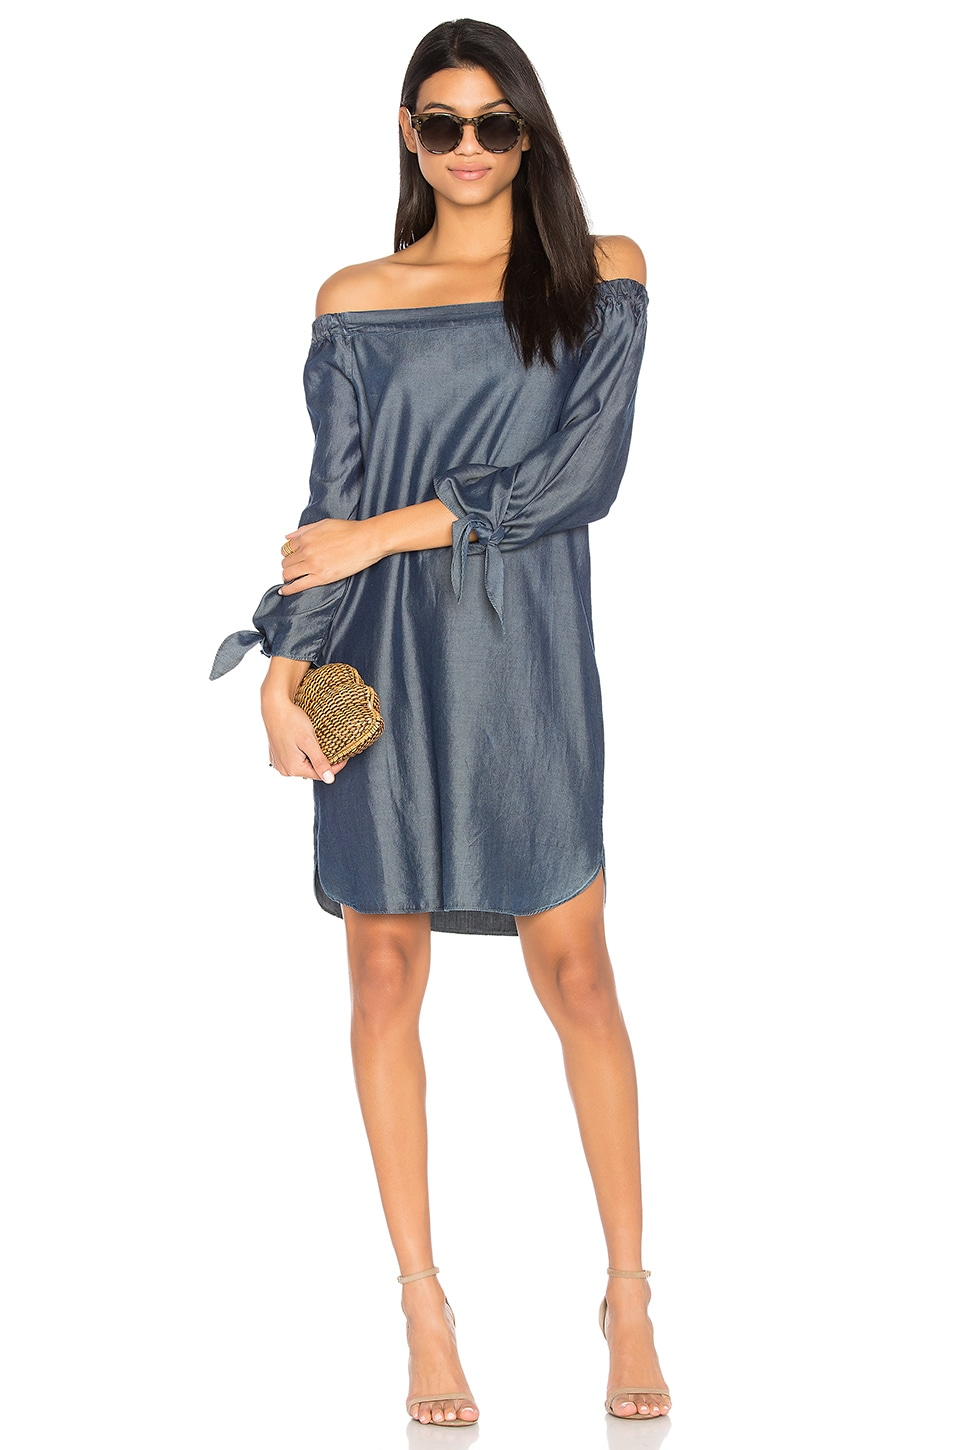 Photo of Sable Off Shoulder Dress by Charli on sale